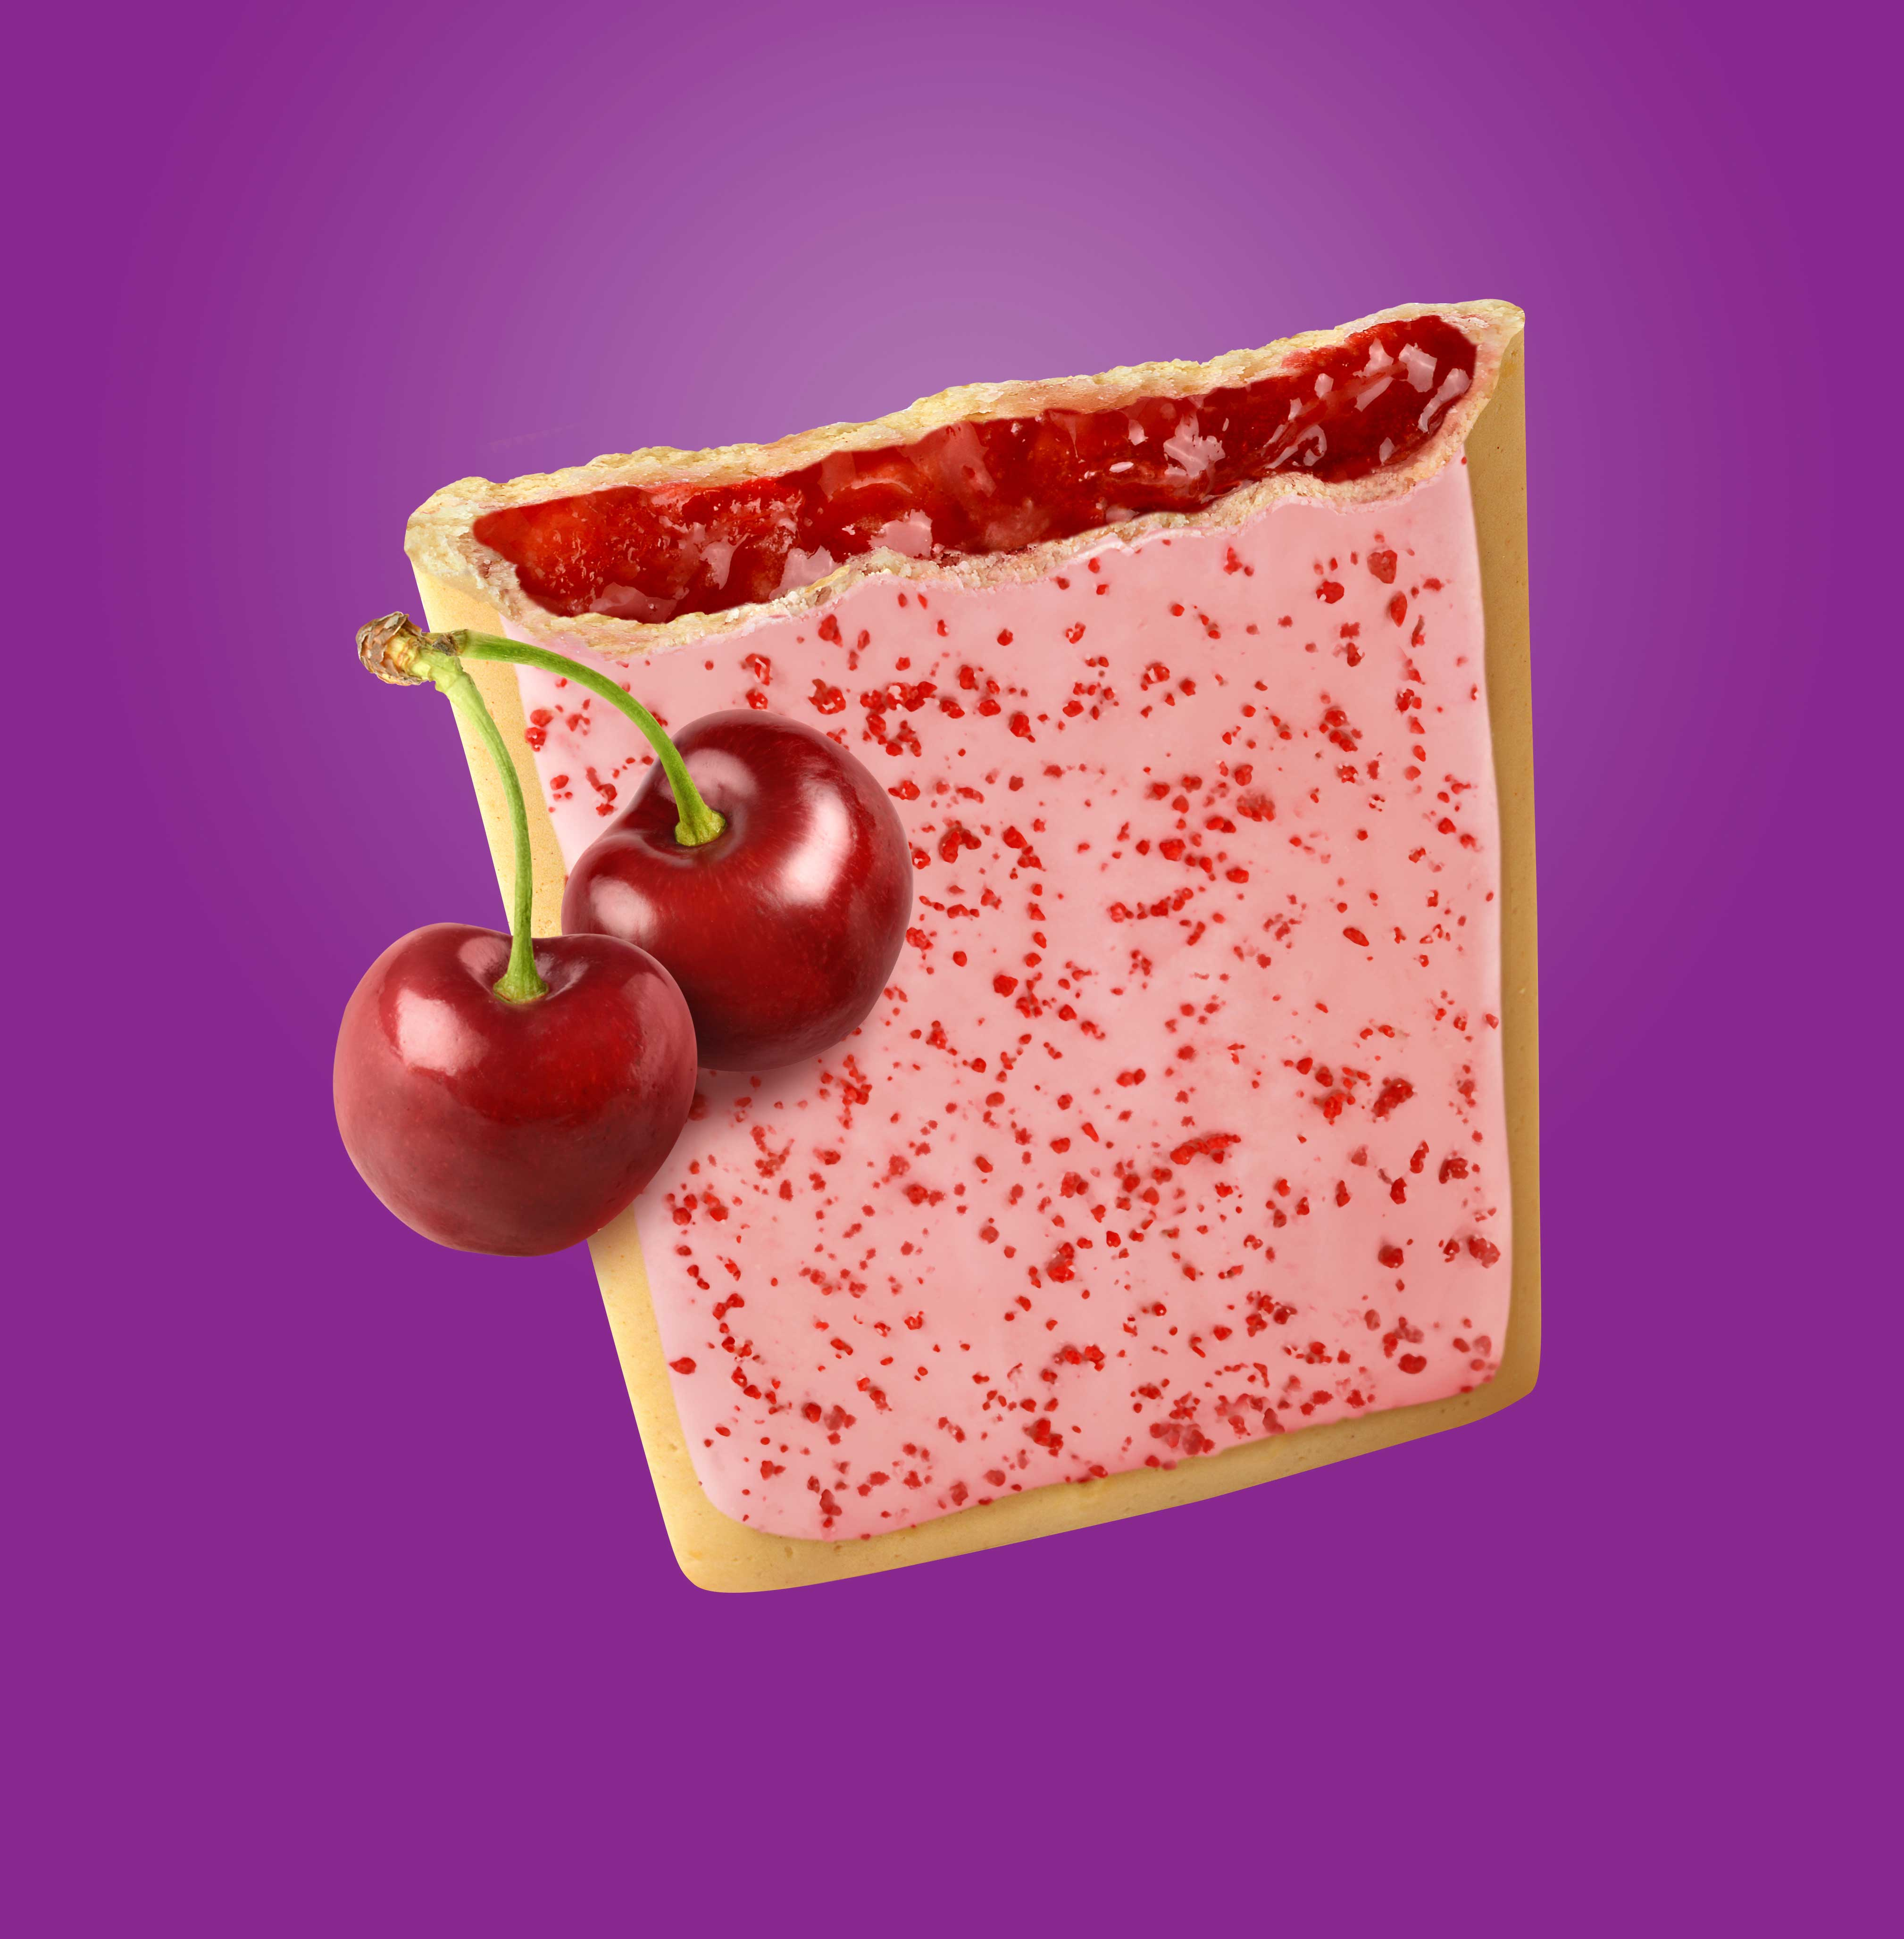 mike wepplo photoreal photography frosted cherry pop tart